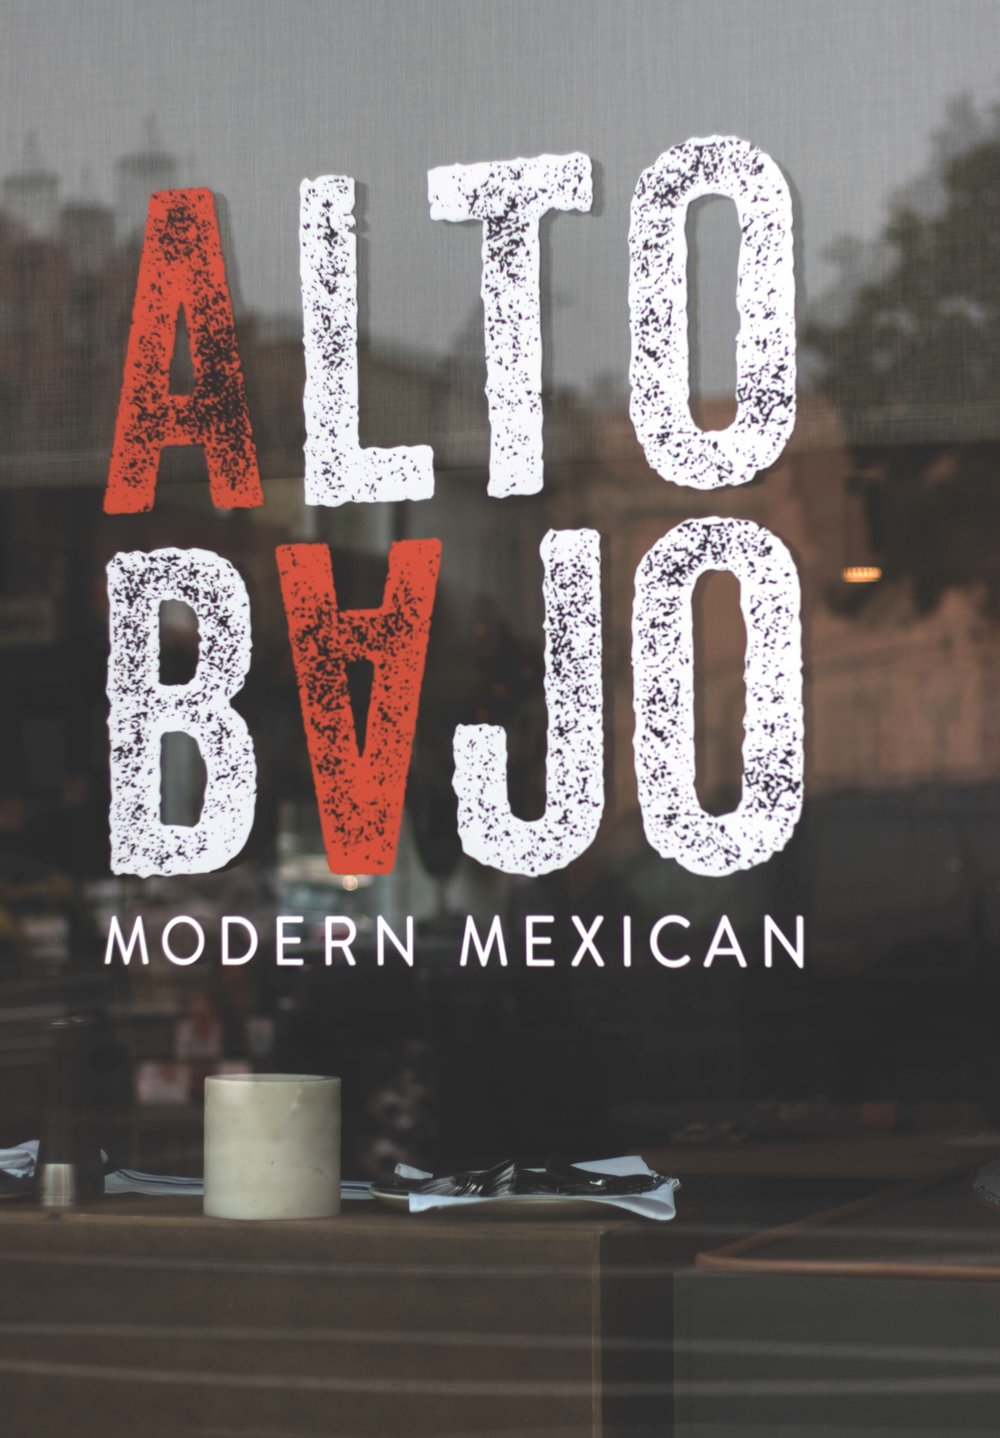 Alto Bajo is a modern Mexican restaurant in Portland. Hi Lo hotel. Daniel House.